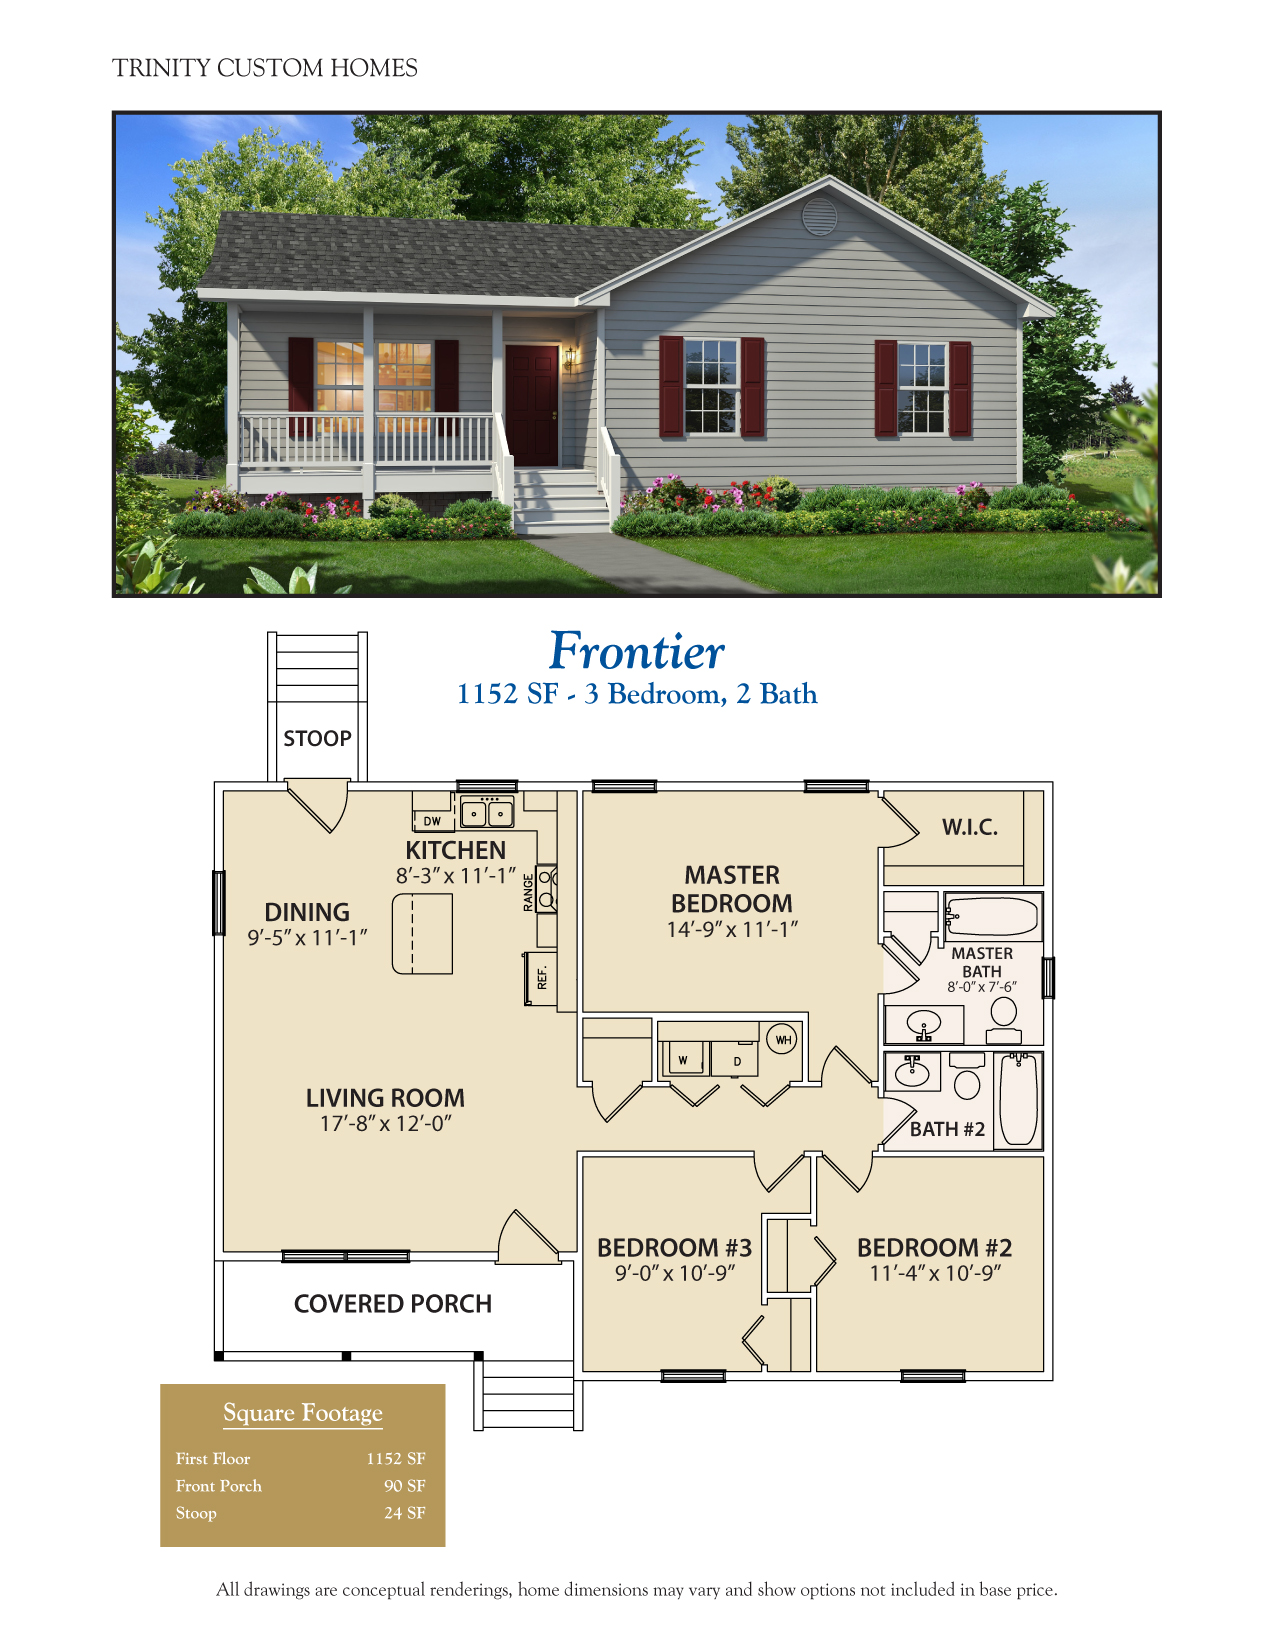 Trinity custom homes floor plans gurus floor for Create custom floor plans